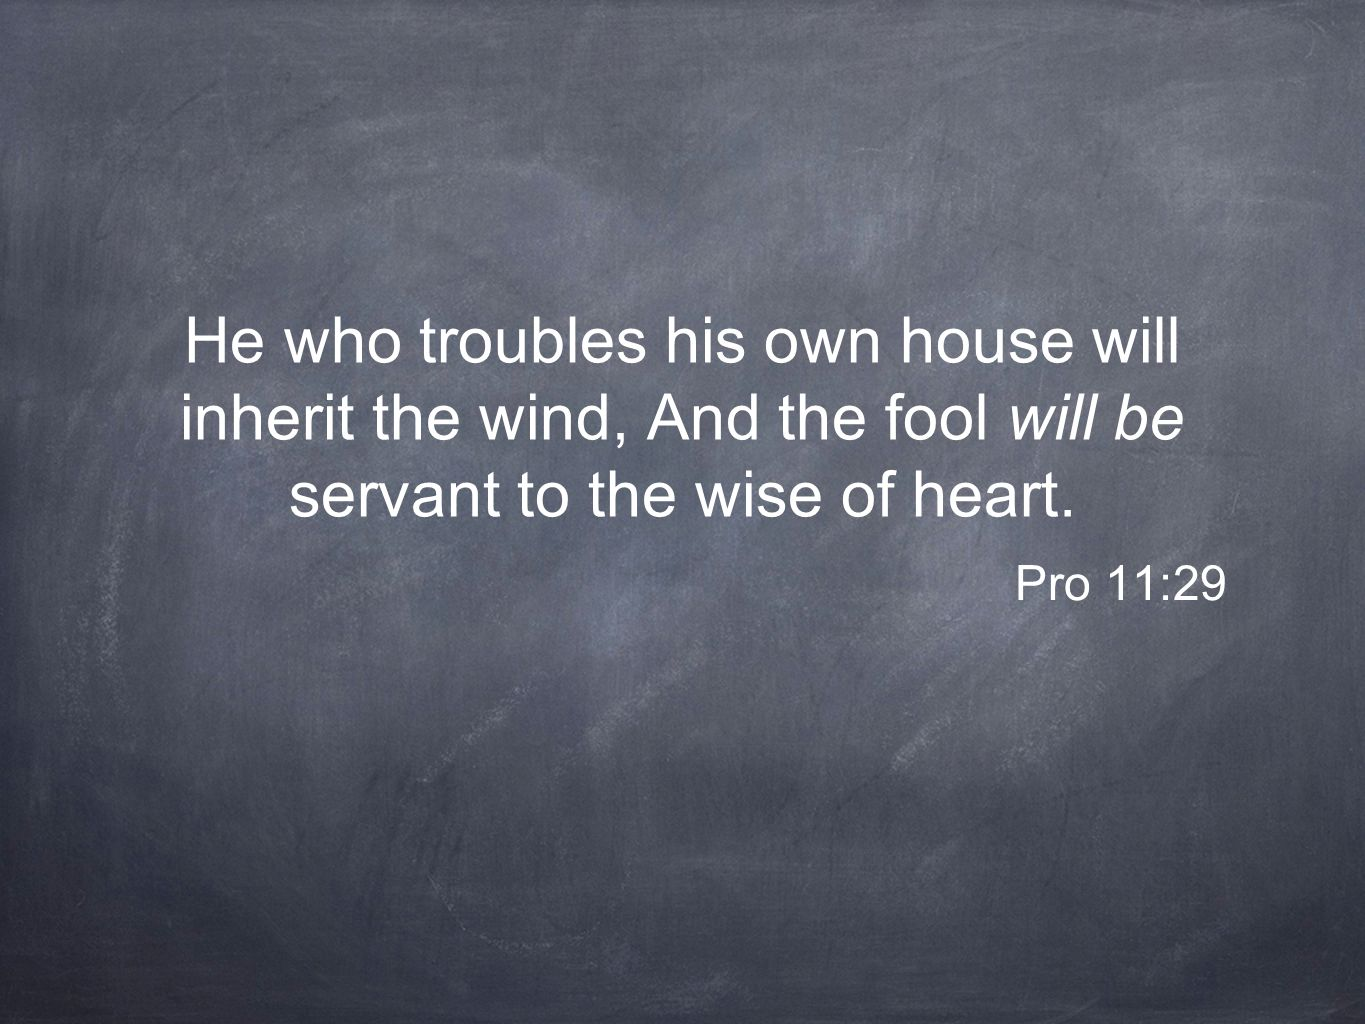 He who troubles his own house will inherit the wind, And the fool will be servant to the wise of heart.